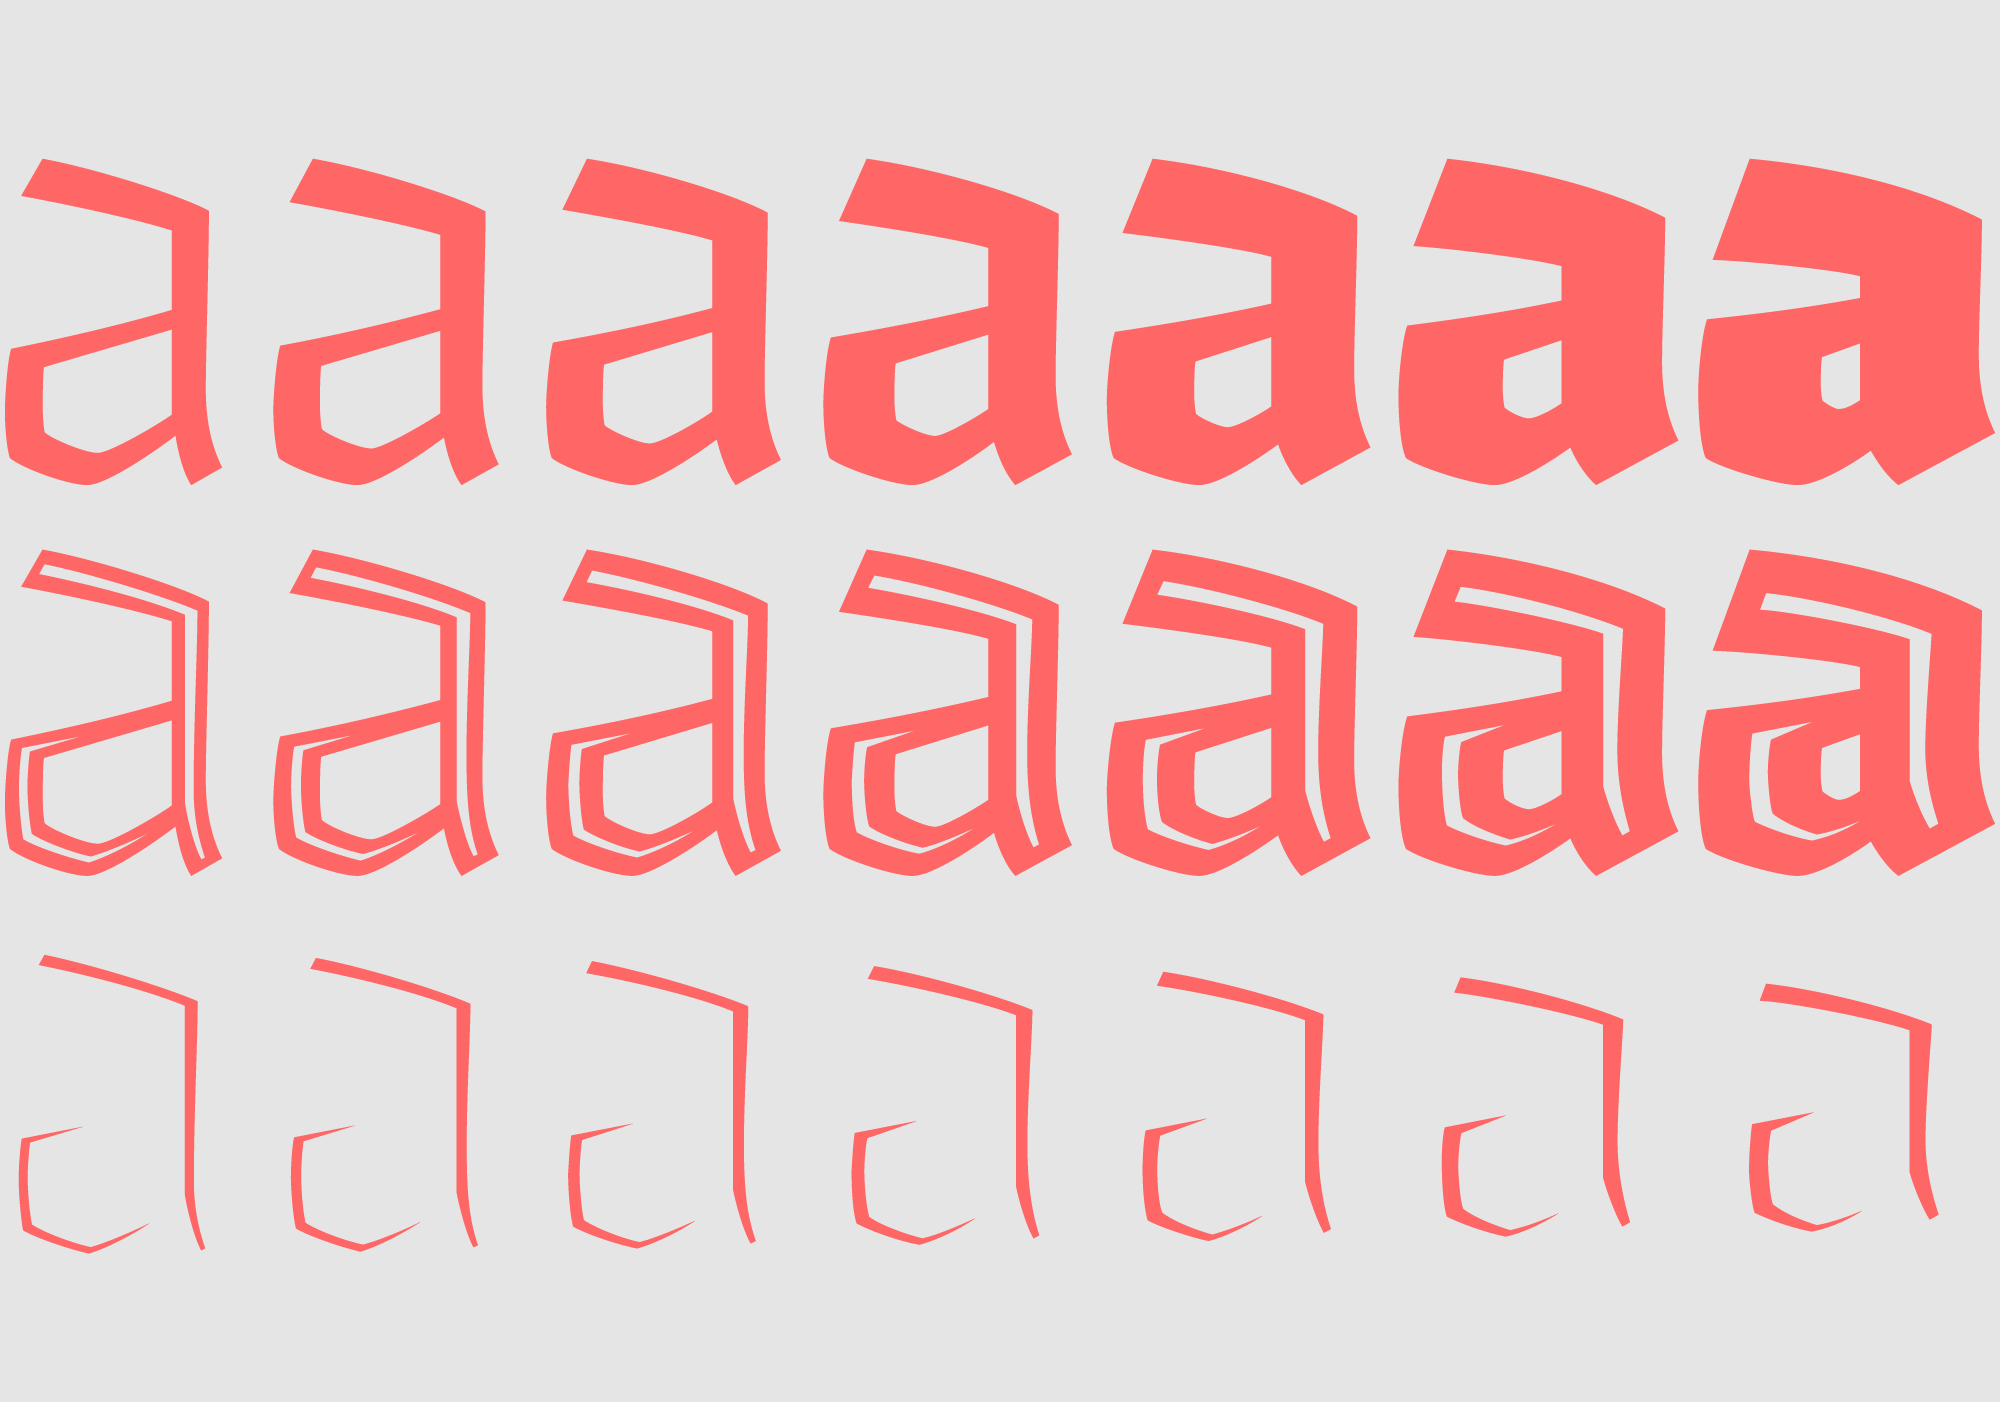 The family includes seven weights in solid and inline version plus the complementary fill fonts.